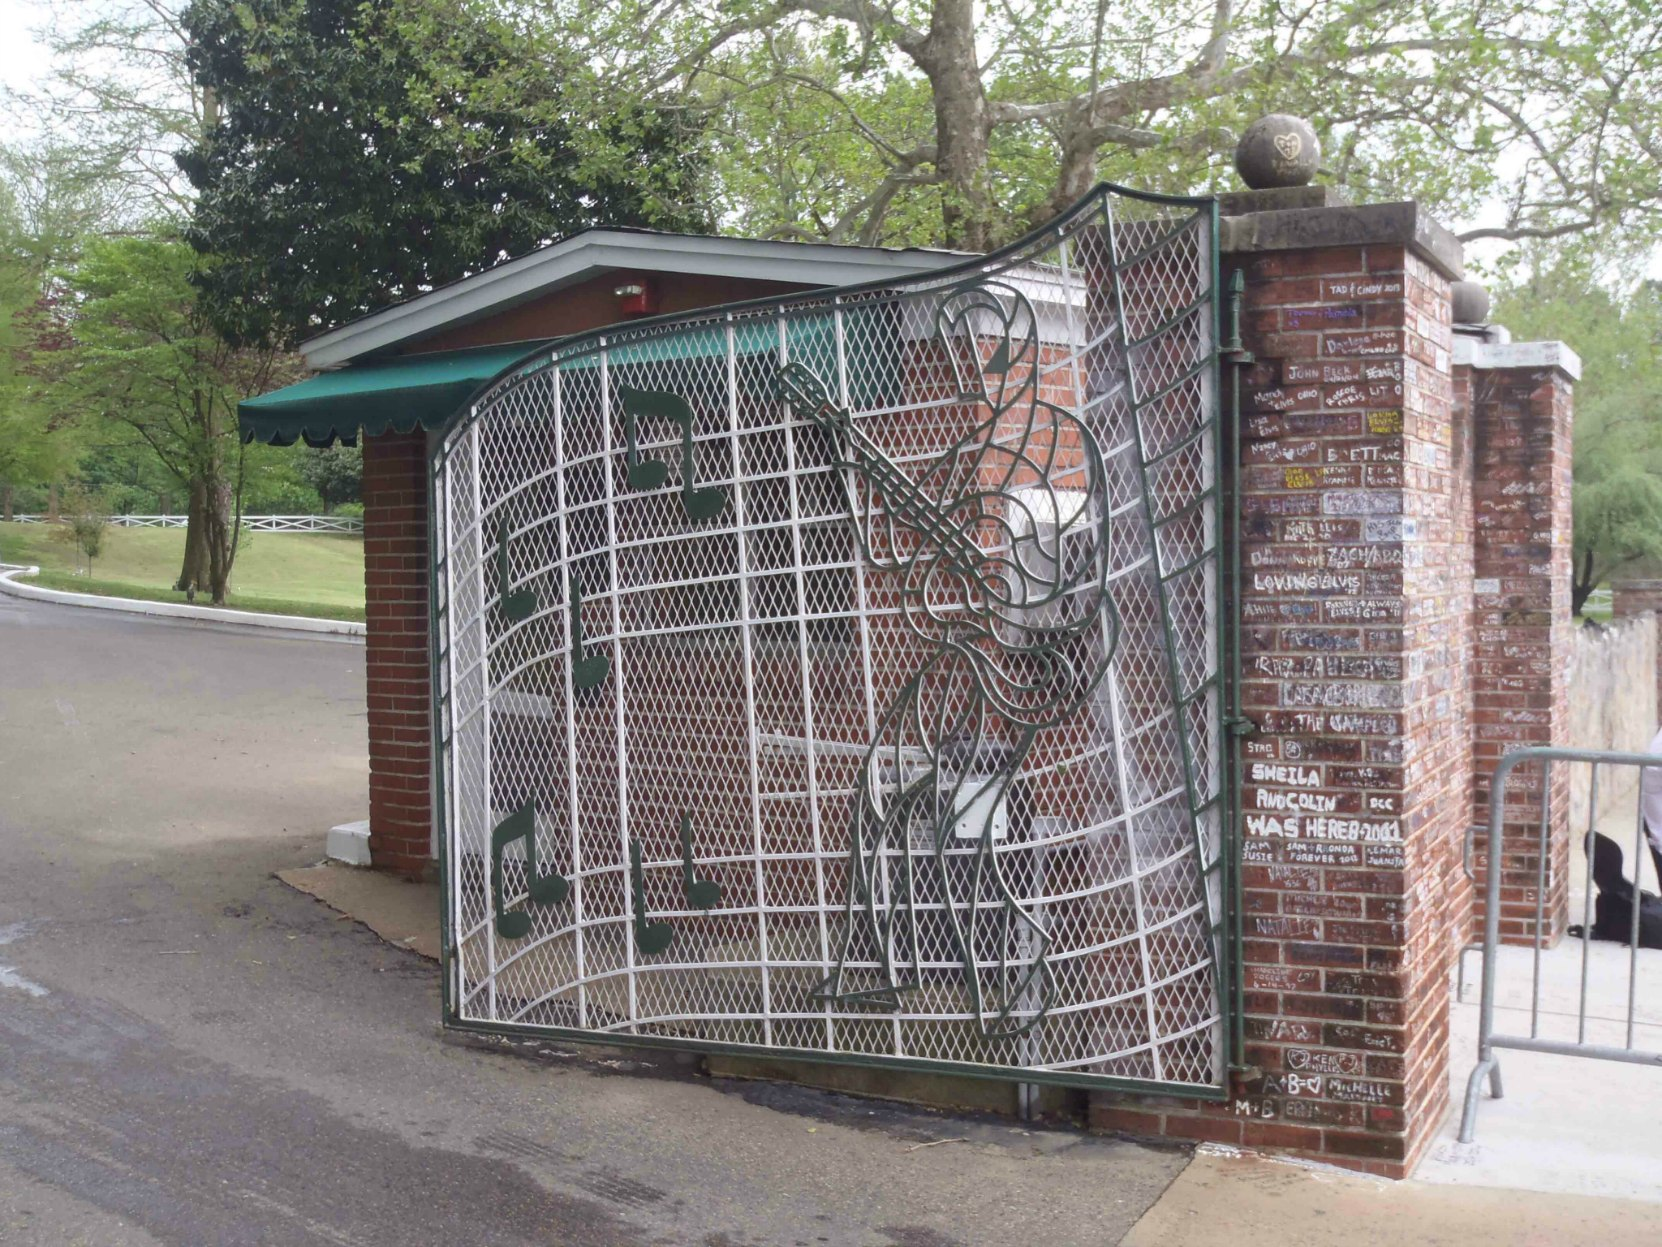 The right hand entrance gate of Graceland, Elvis Presley's home in Memphis Tennessee